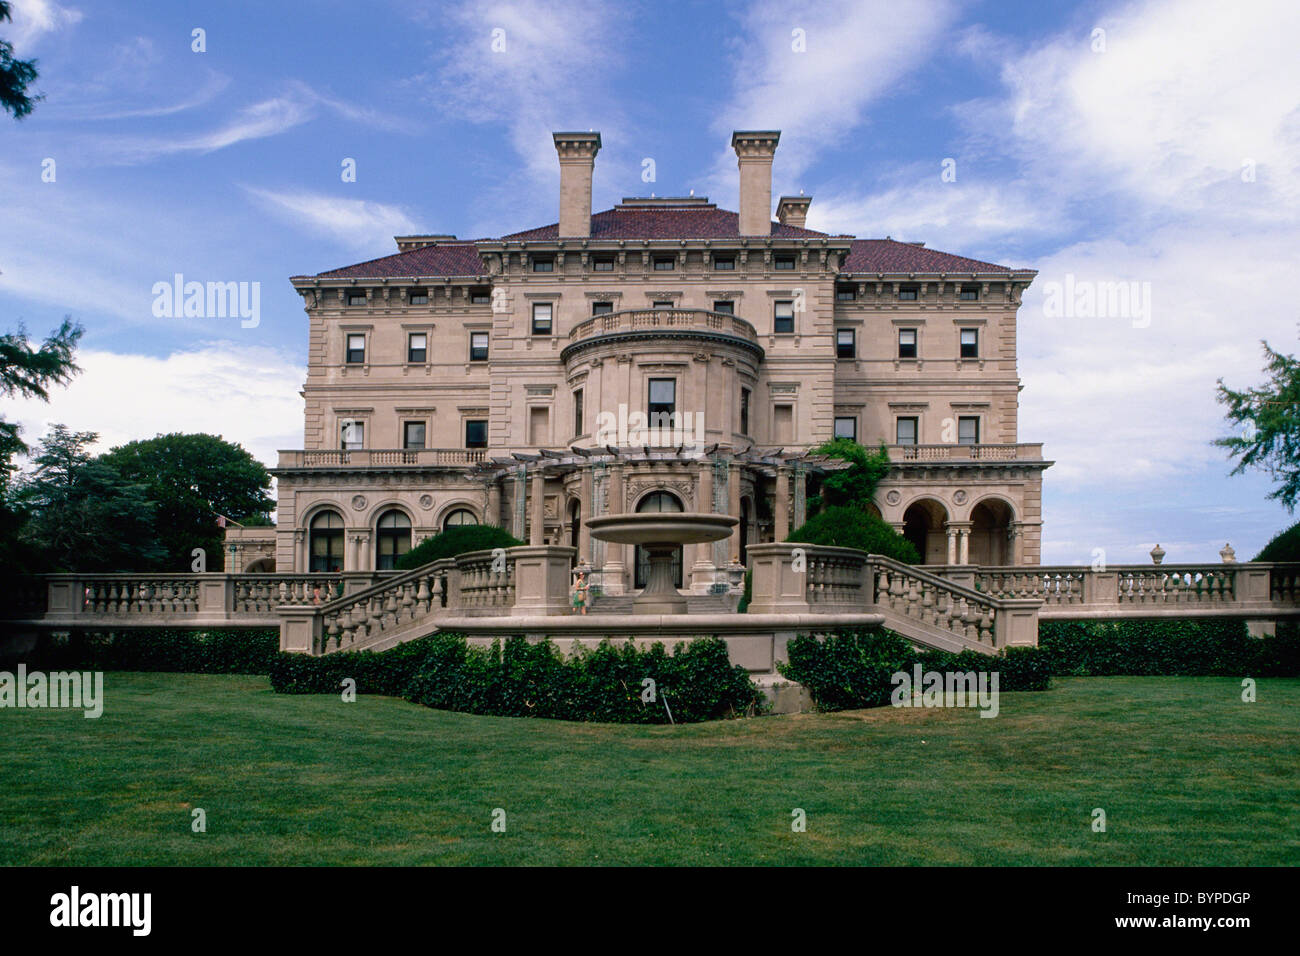 Breakers Mansion Side Entrance View, Newport, Rhode Island - Stock Image